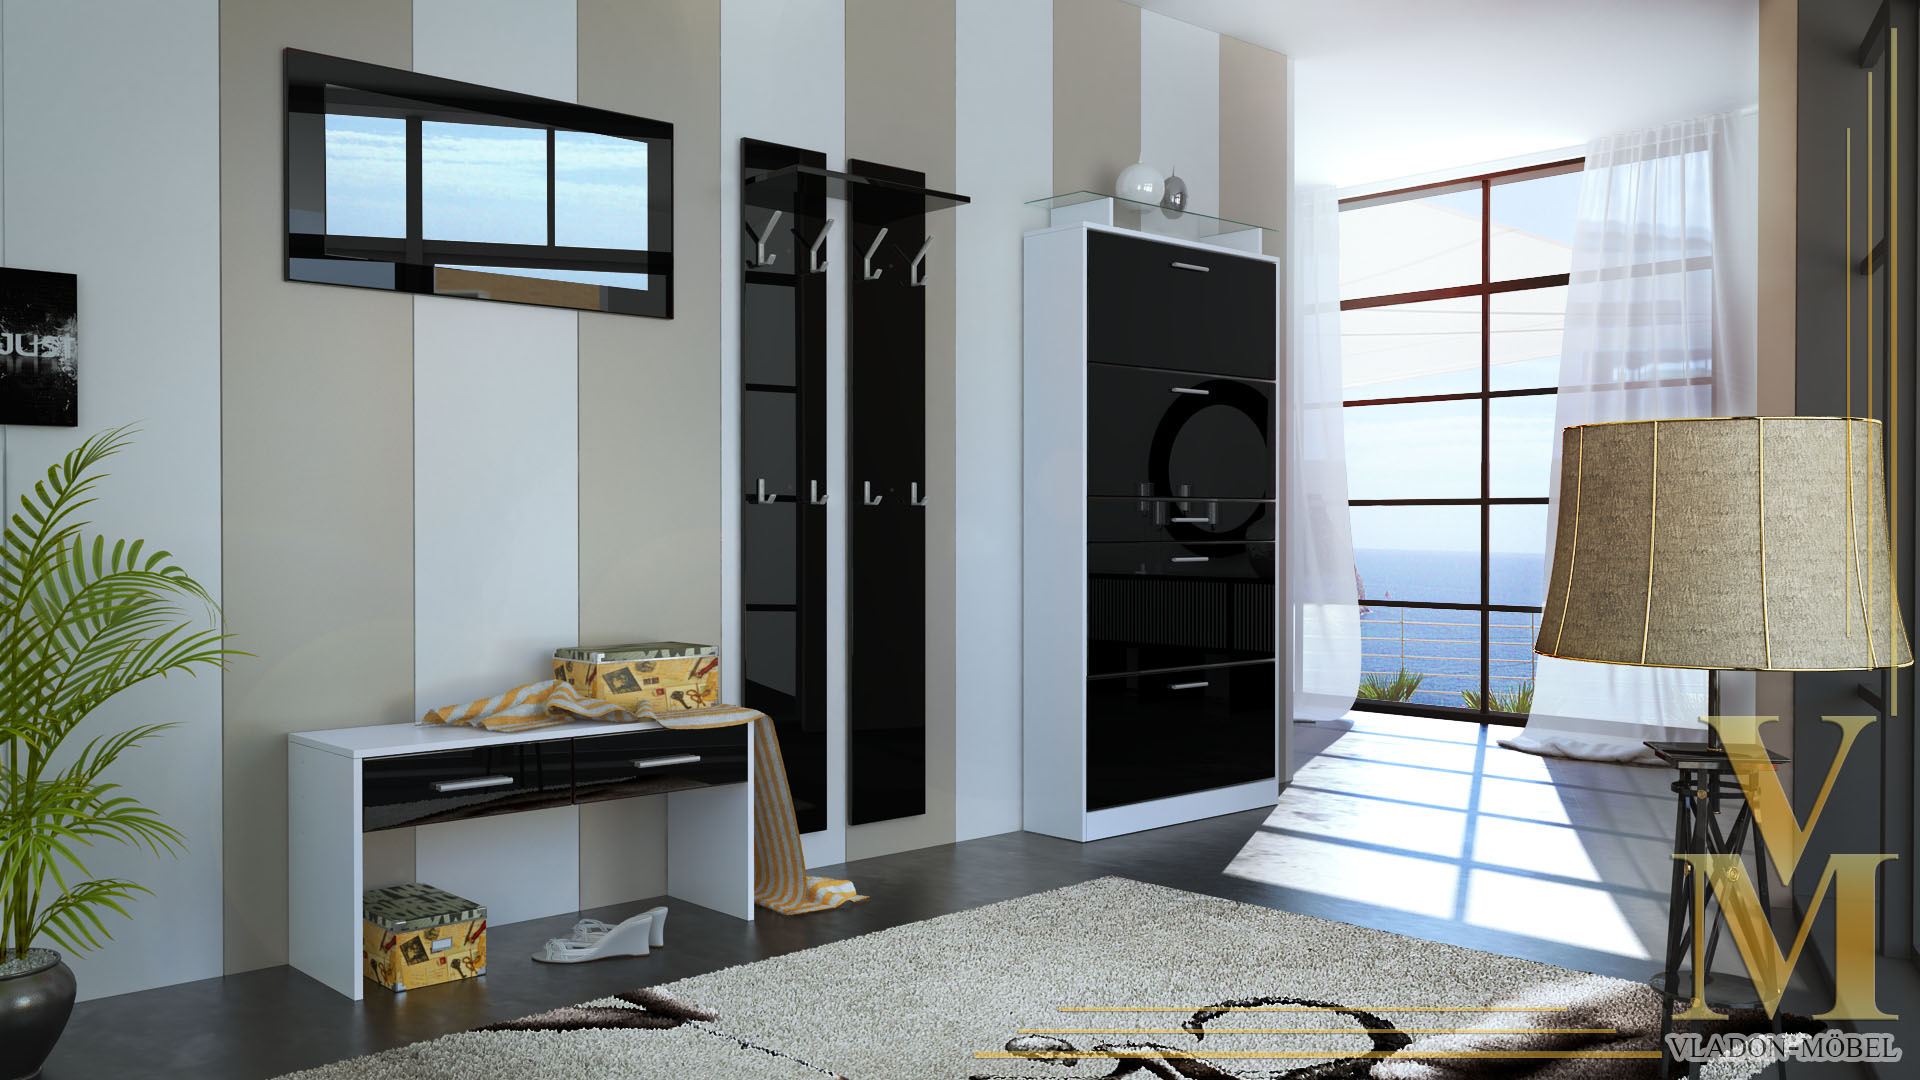 garderobenset rima wei schwarz hochglanz ebay. Black Bedroom Furniture Sets. Home Design Ideas